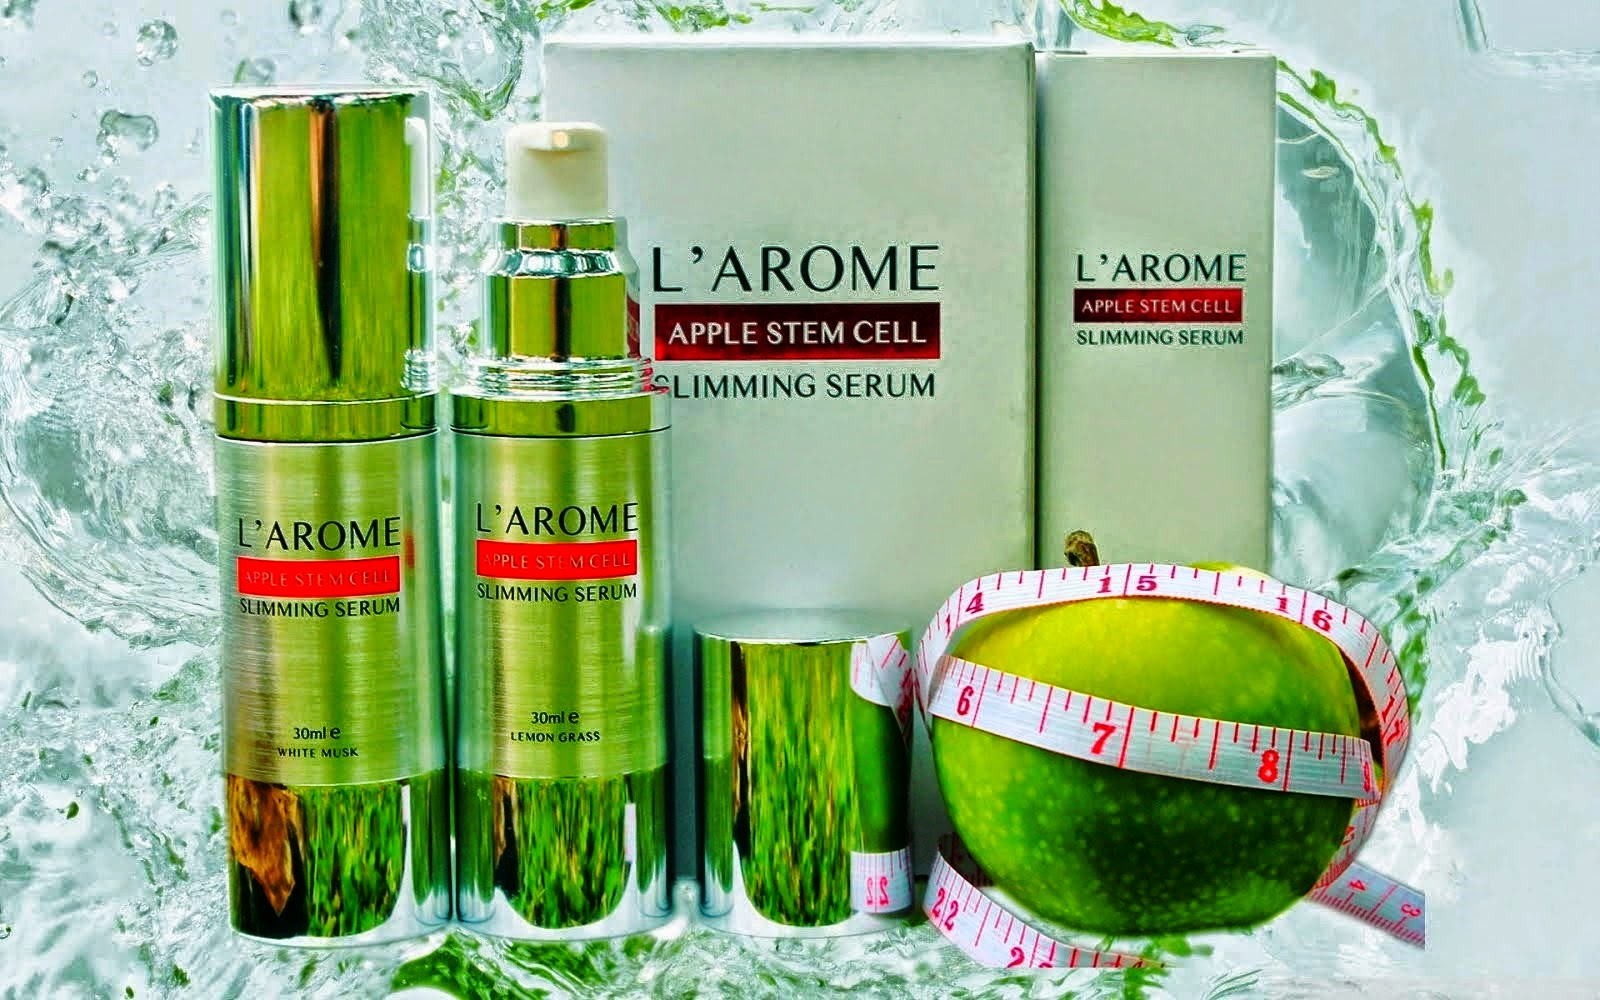 larome apple stem cell serum